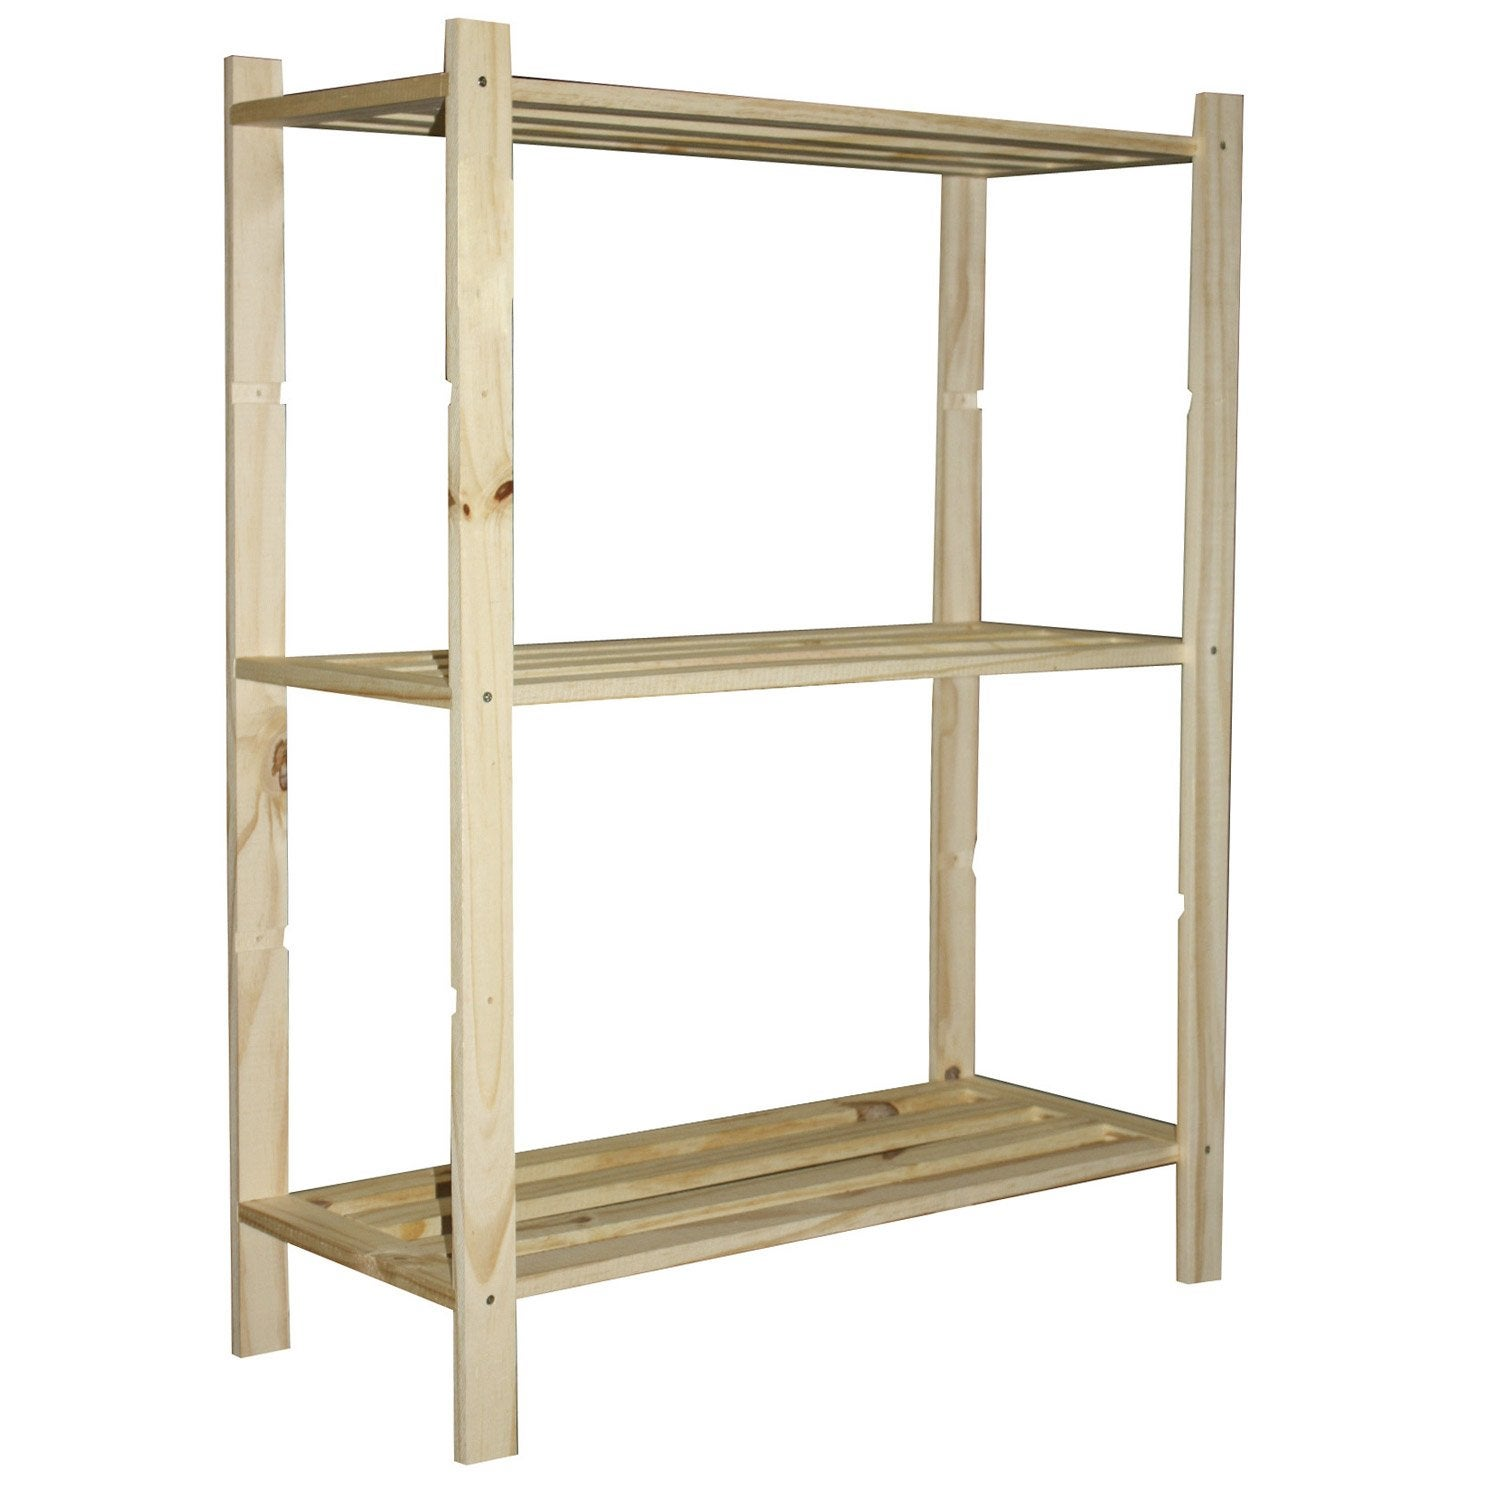 Etag re pin 3 tablettes x x cm leroy merlin - Etagere bois leroy merlin ...